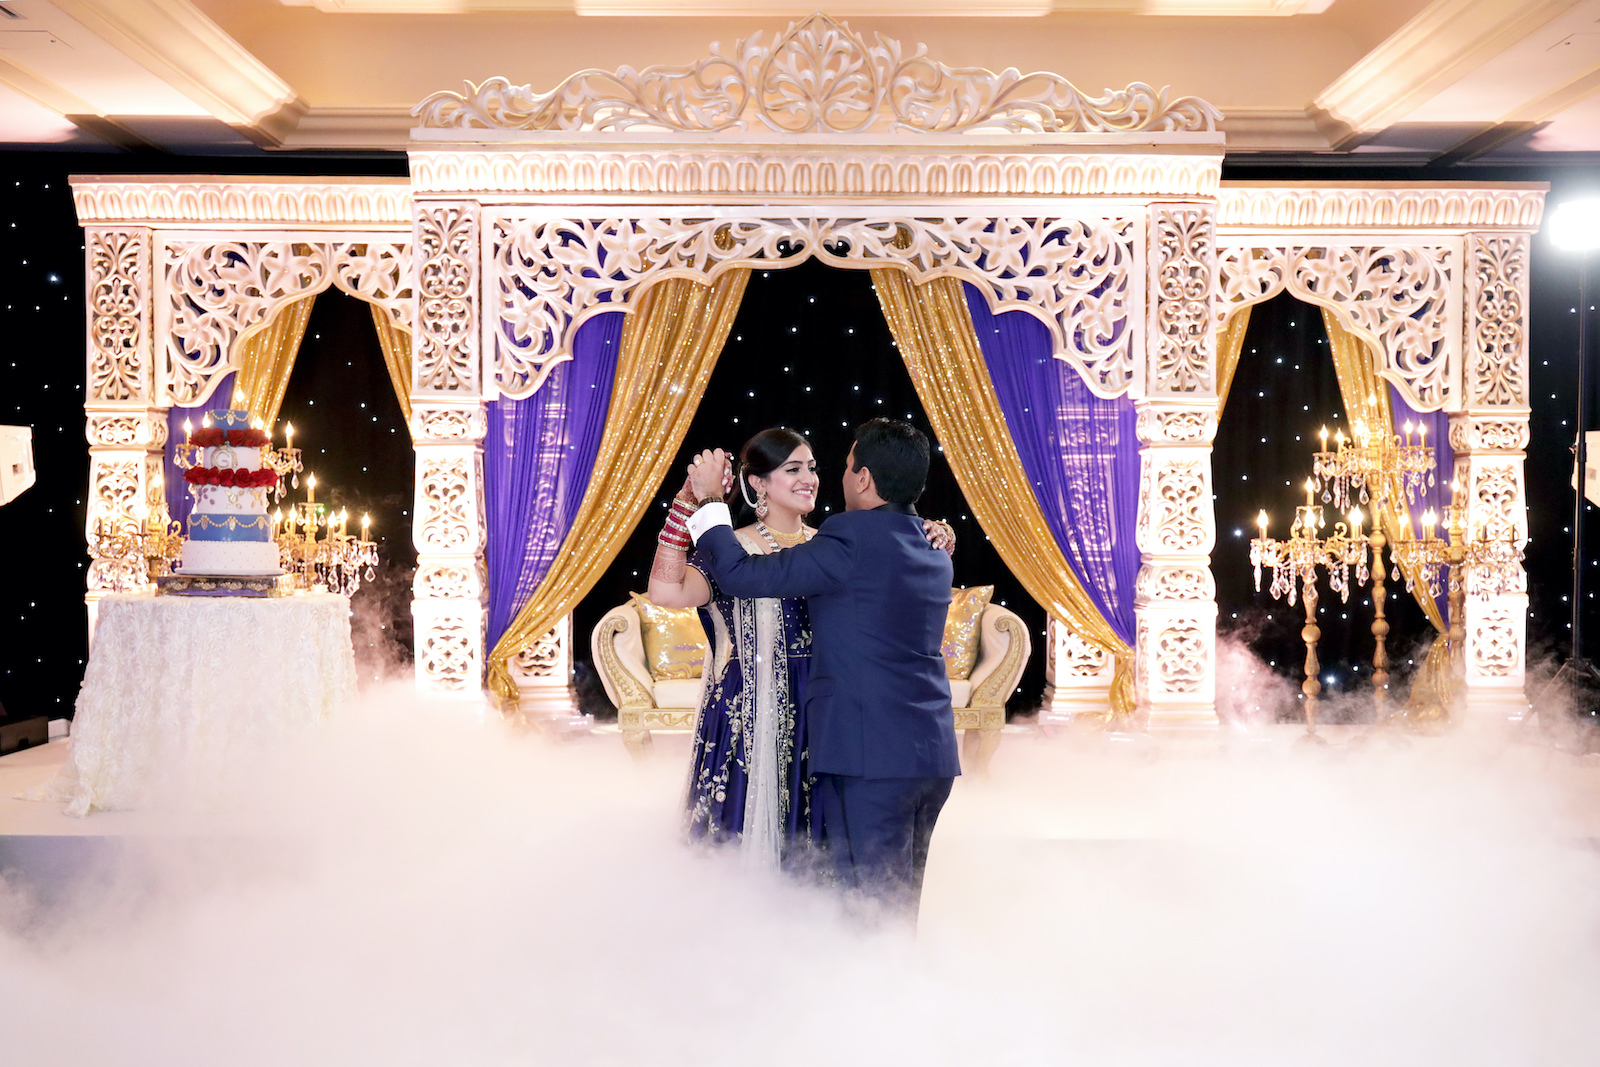 Indian Bride and Groom First Dance with Fog Machine| White Gold and Blue Indian Wedding Mandap Stage with Gold Candelabras | Navy Blue and Gold Indian Wedding Dress | Indian Groom in Classic Navy Blue Tuxedo